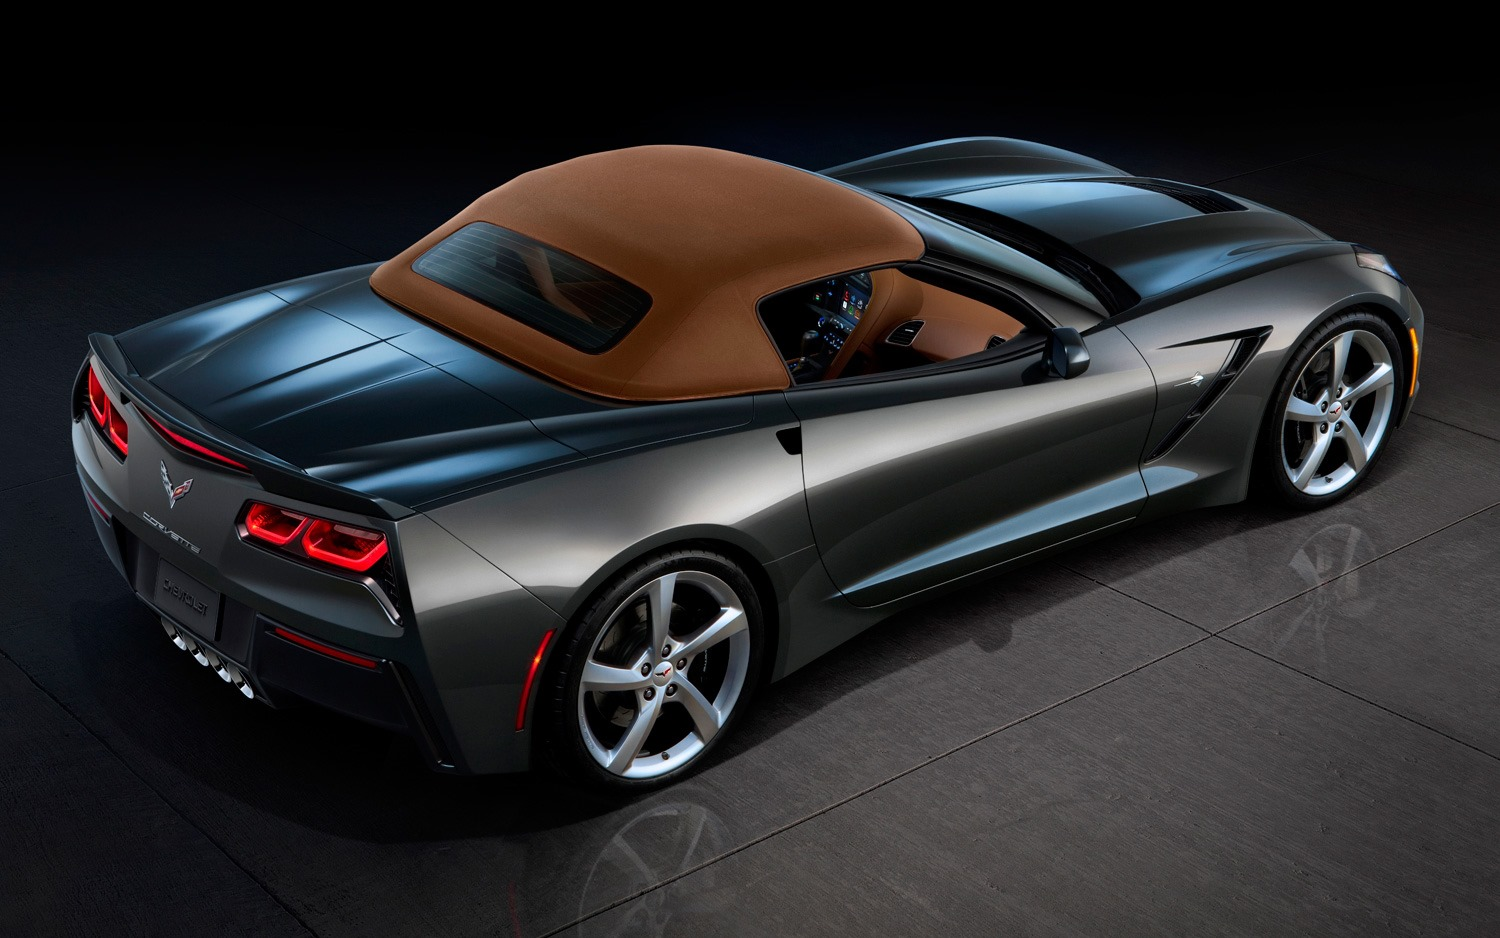 2014_chevrolet_corvette_stingray_convertible_04